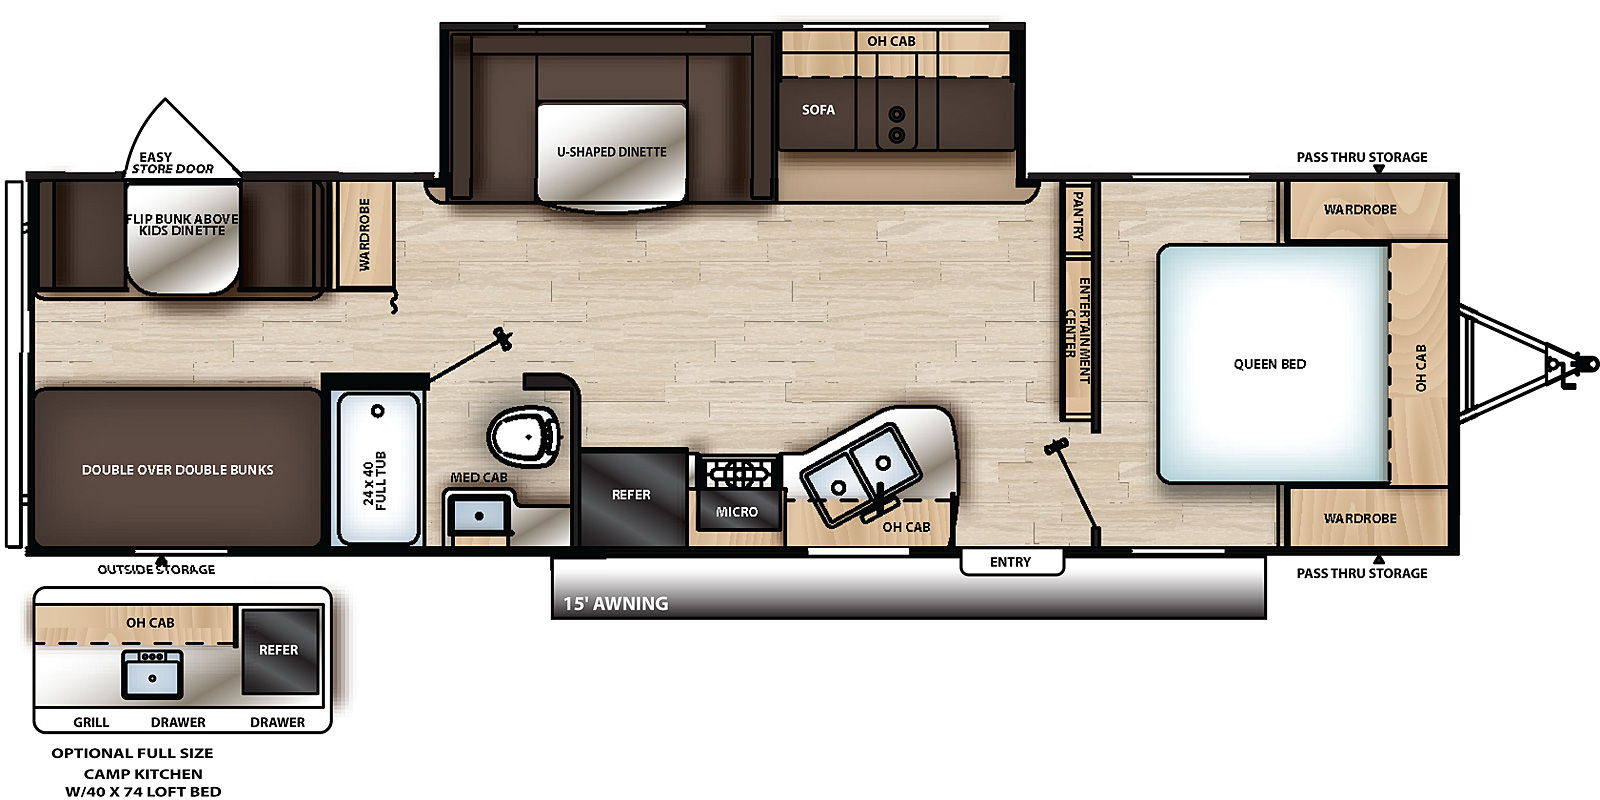 Floorplan for Catalina Summit Series 8 Travel Trailer model 291BHS